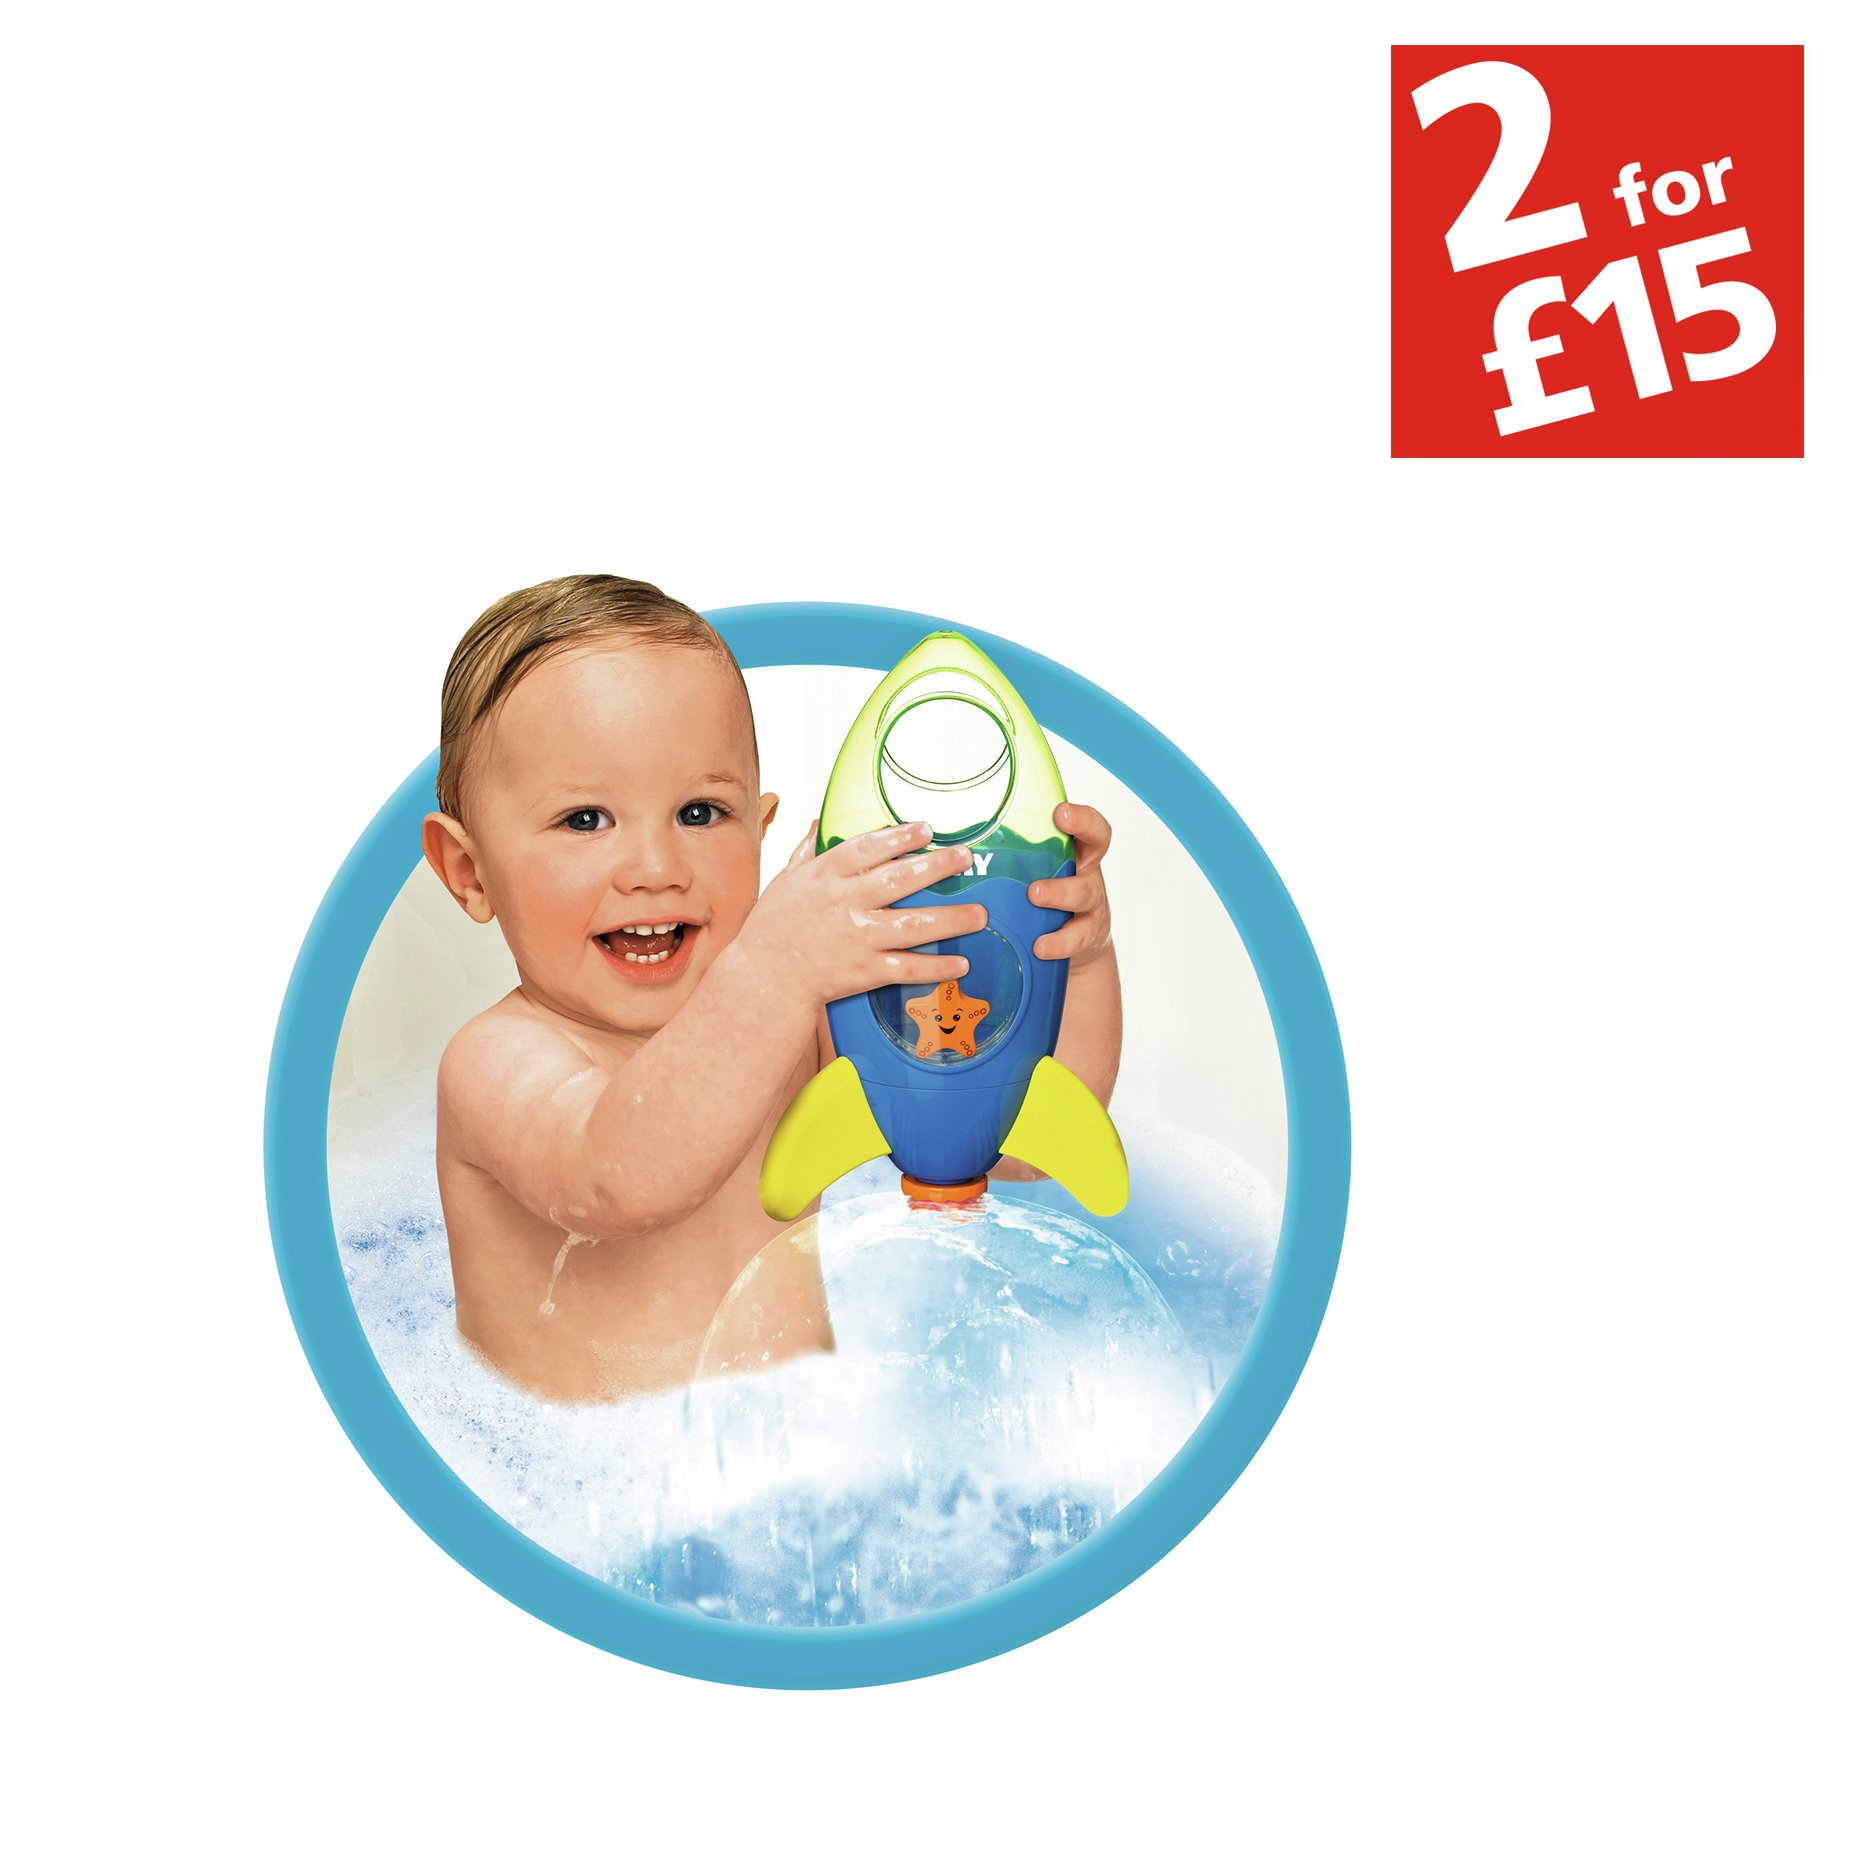 Bath Toys Baby Bathing/Grooming New Tomy TOMY Bath Toys Fountain Rocket Toddler Childrens Bathtime Fun Toy 72357